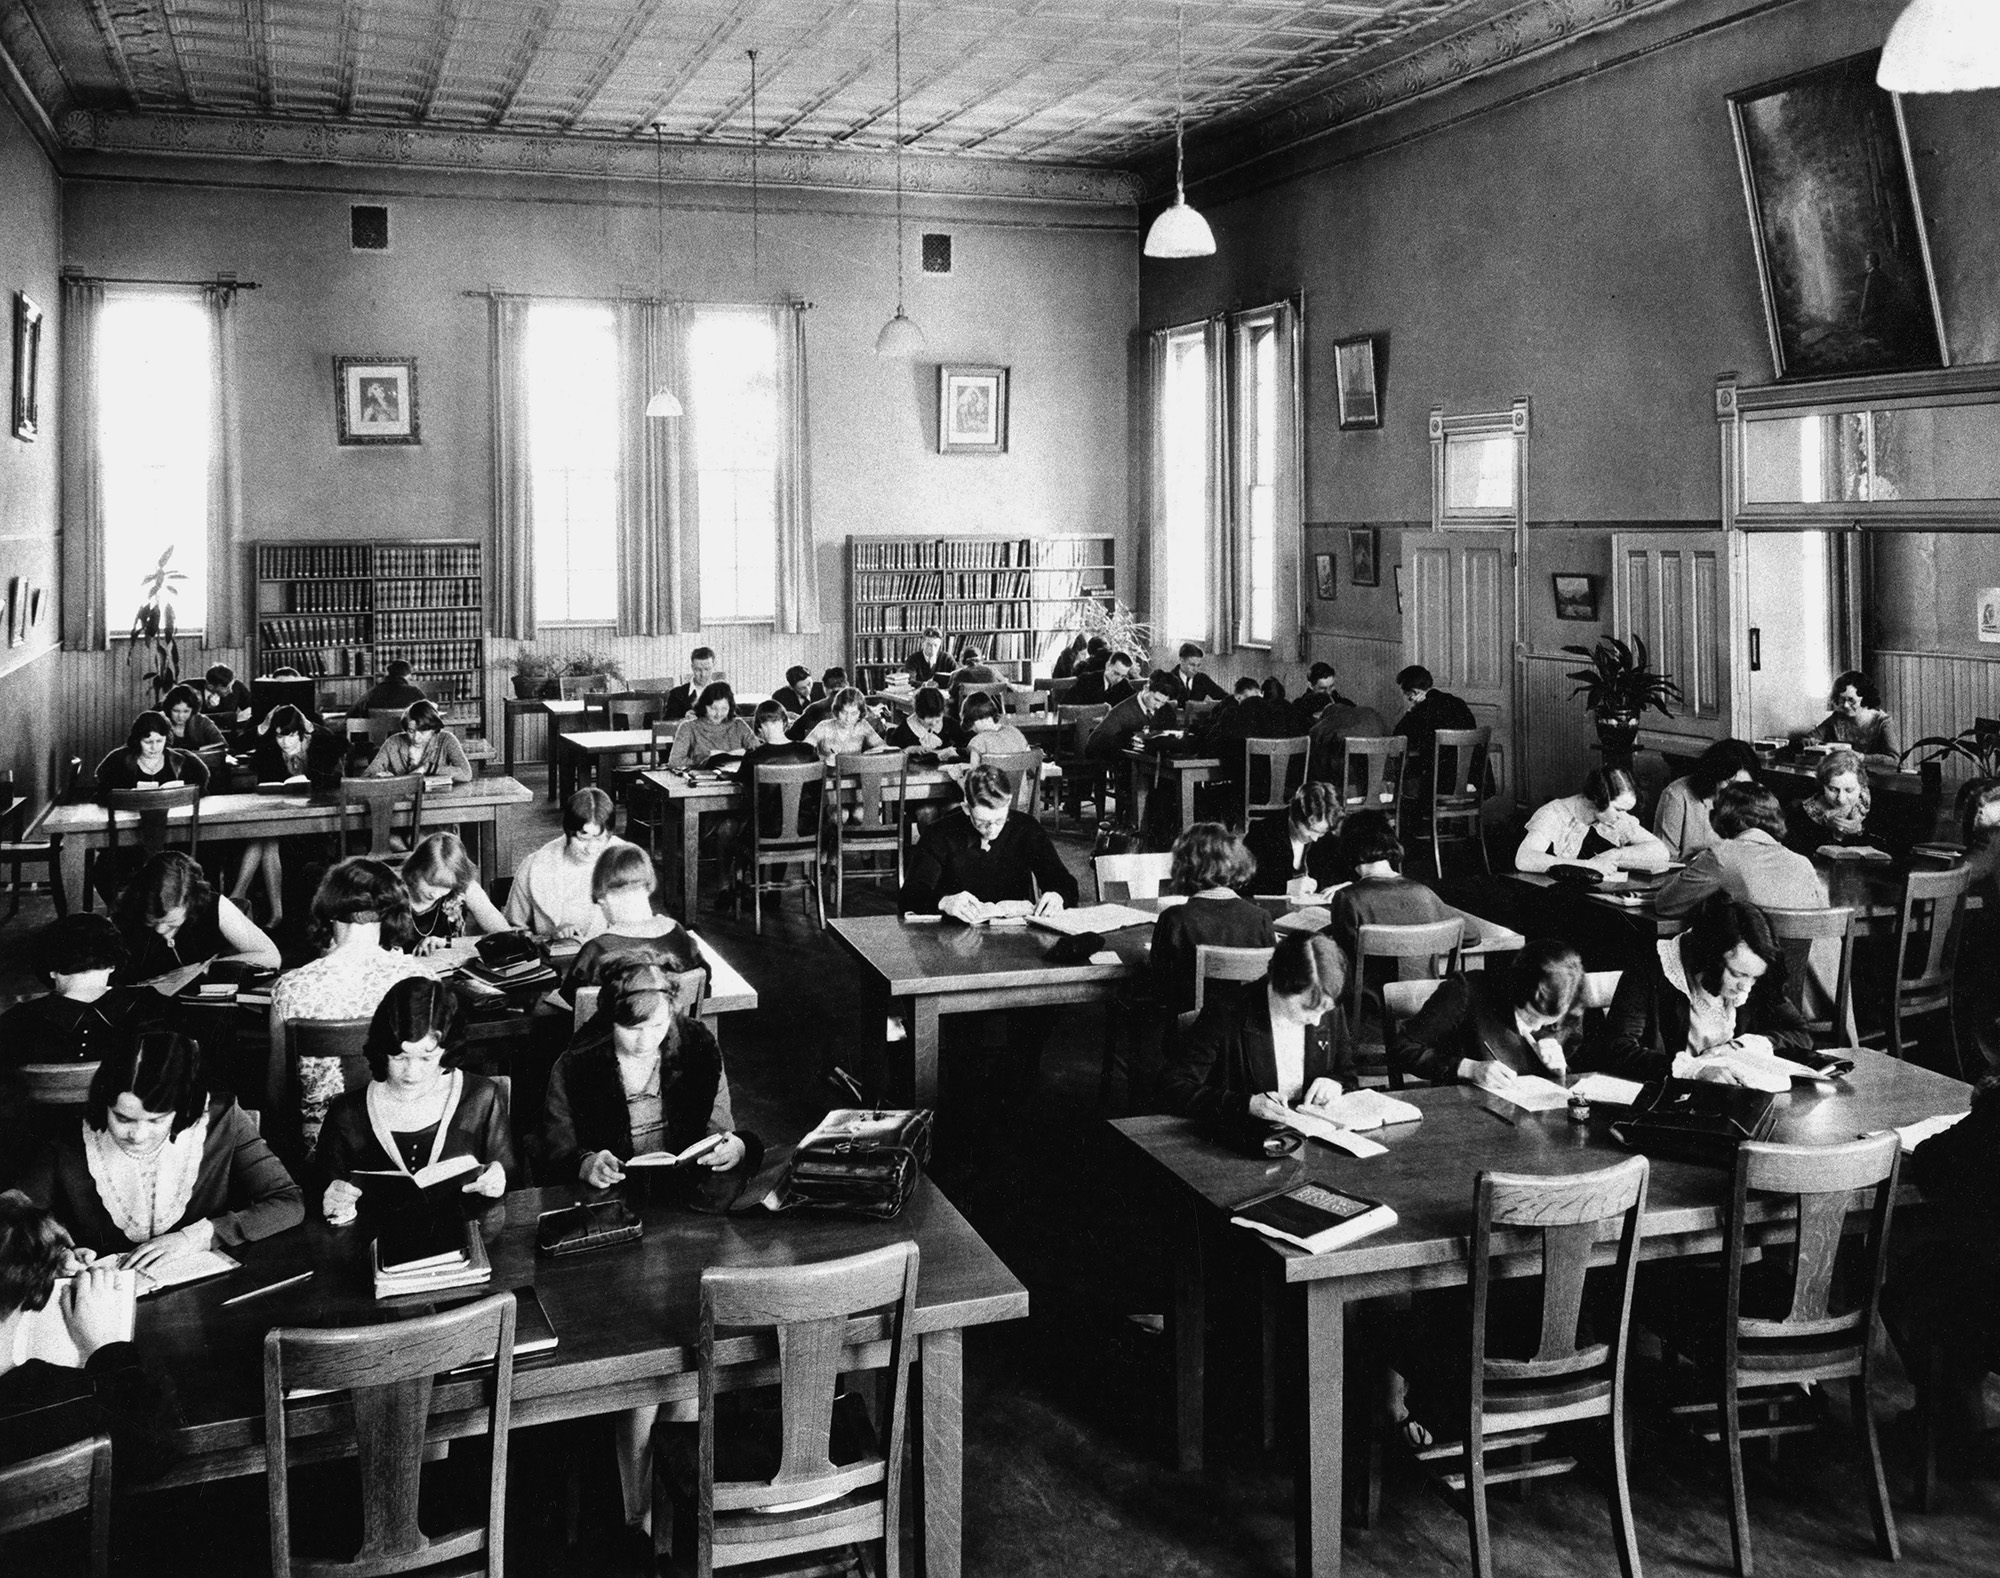 The Moench Building as it appeared in the early 1900s. The building was part of the Weber Stake Academy campus which, prior to becoming a state college in 1933, was a church school run by the Church of Jesus Christ of Latter-day Saints. If you look closely at this image of the Moench Building reading room you will notice a painting portraying an angelic figure visiting the young Joseph Smith. Images courtesy Weber State University Archives.